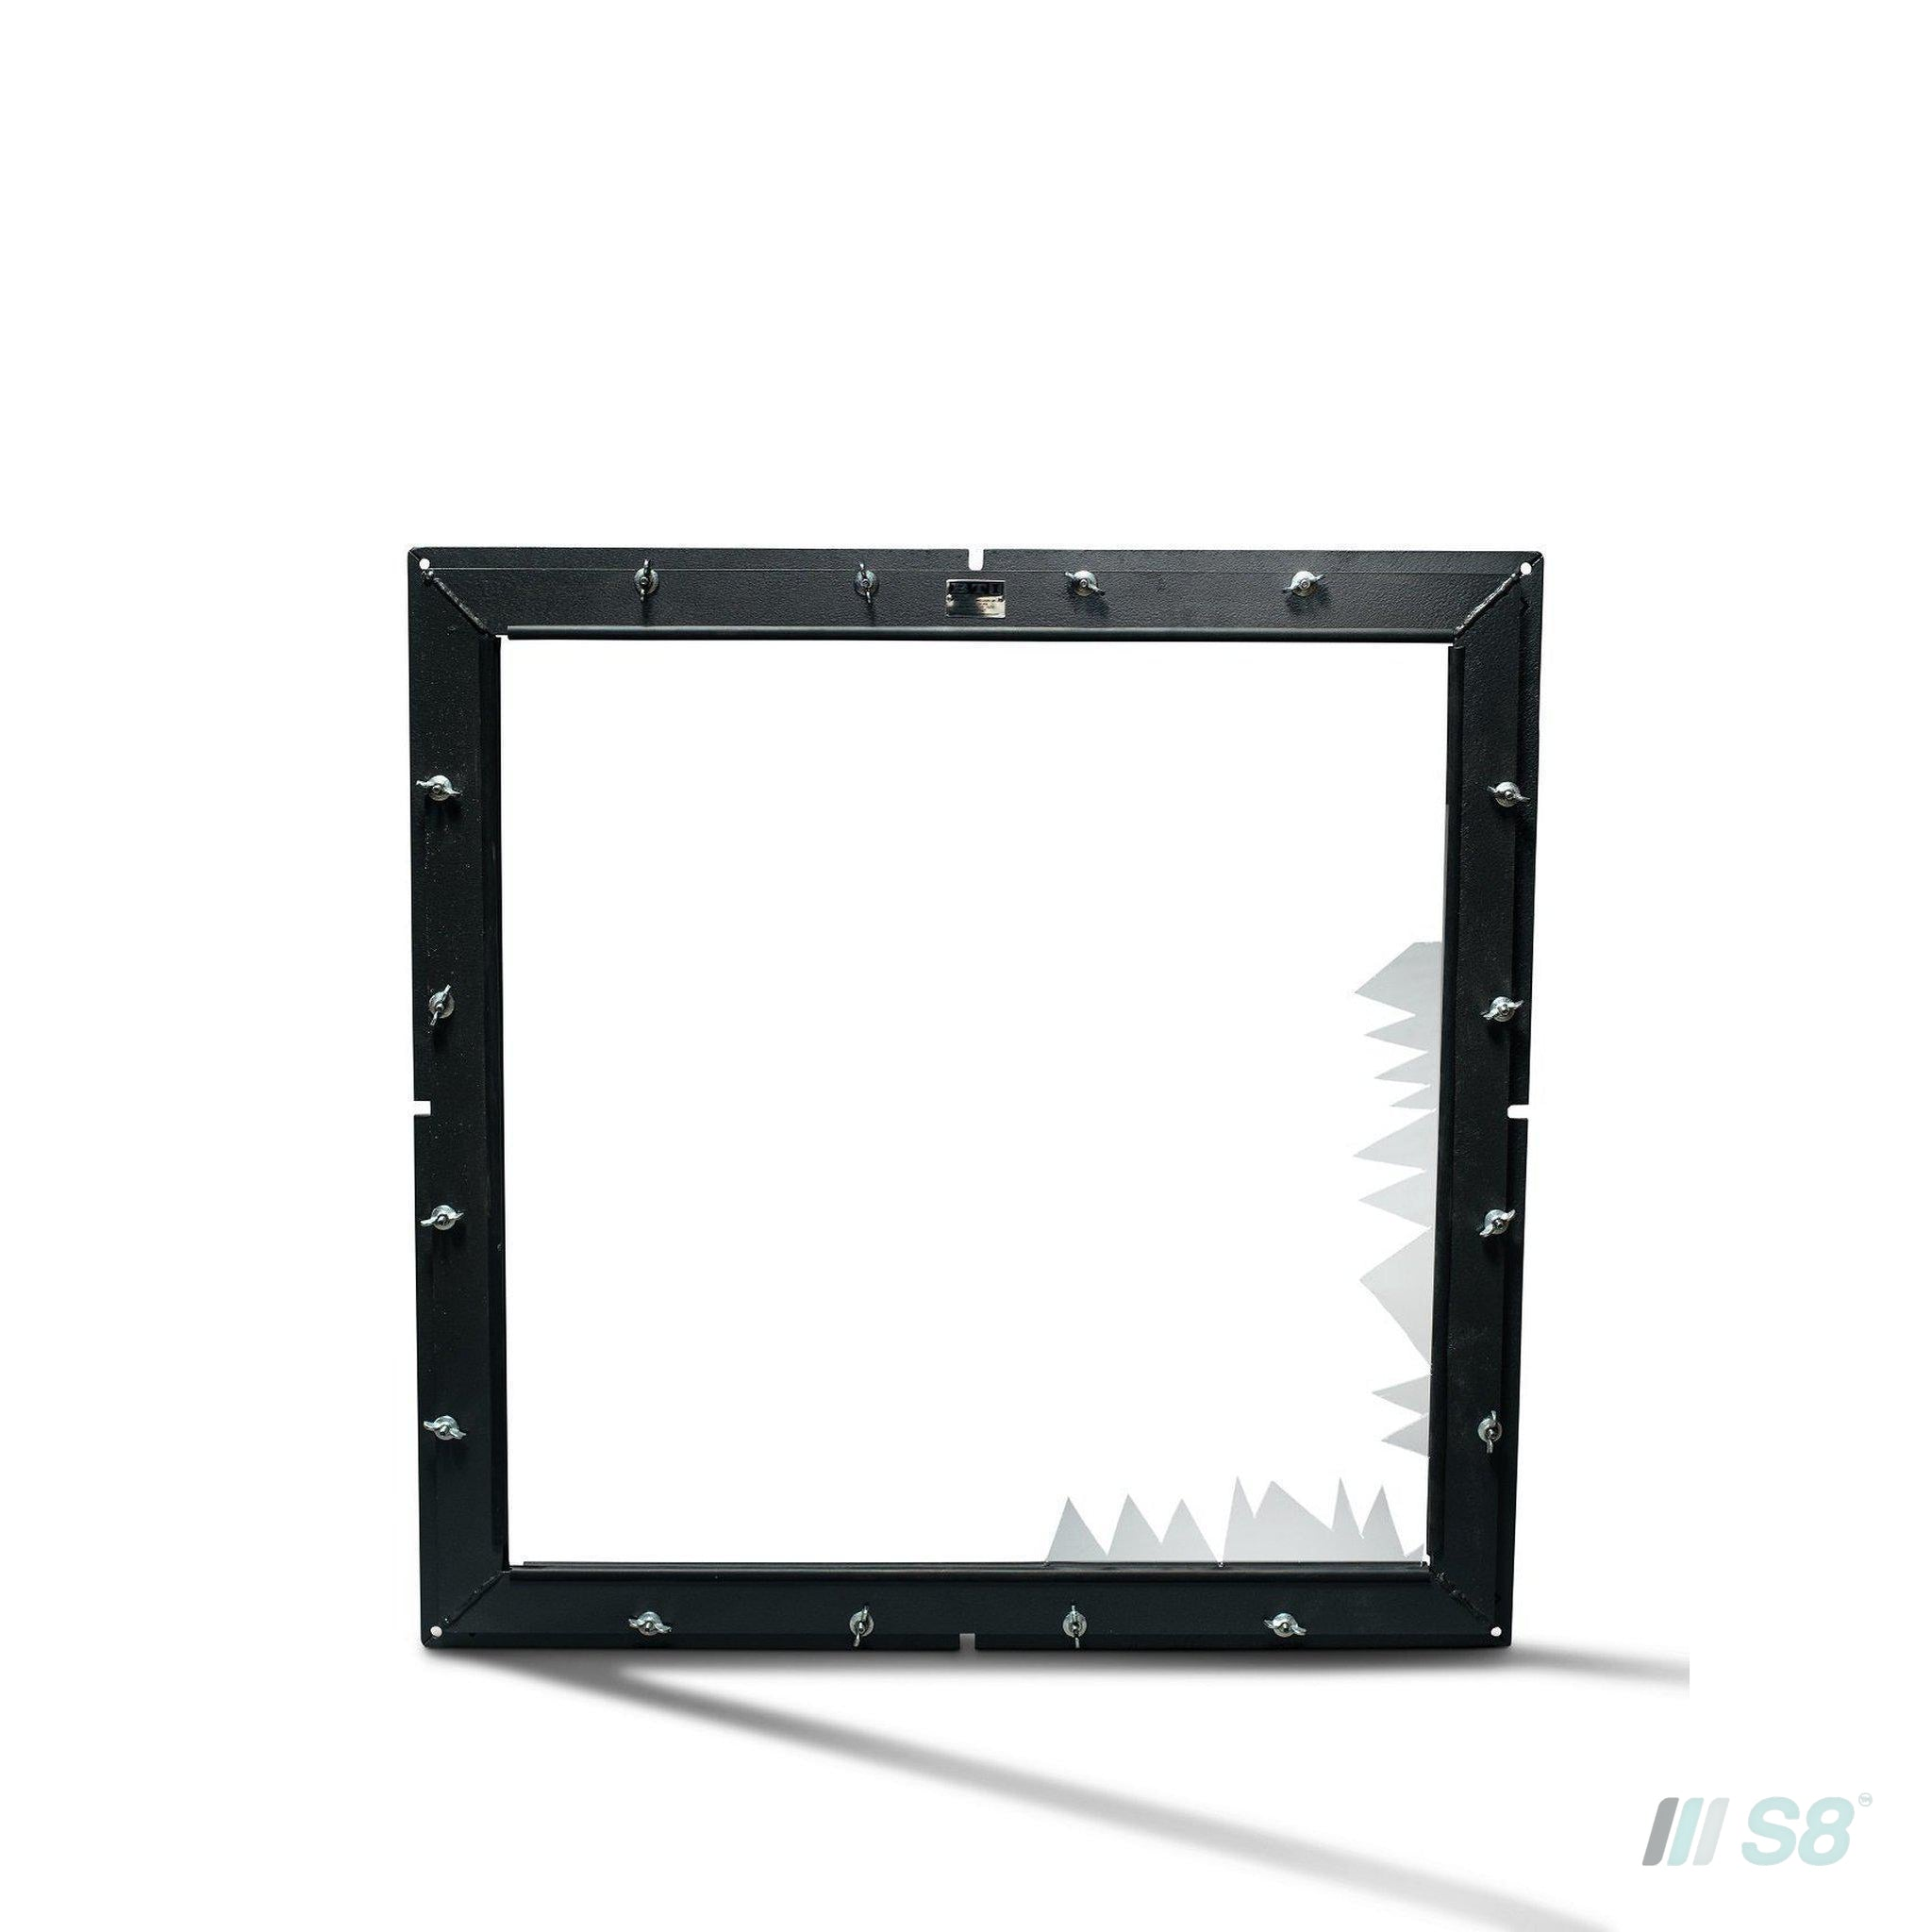 BTI Breaching Window-BTI-S8 Products Group